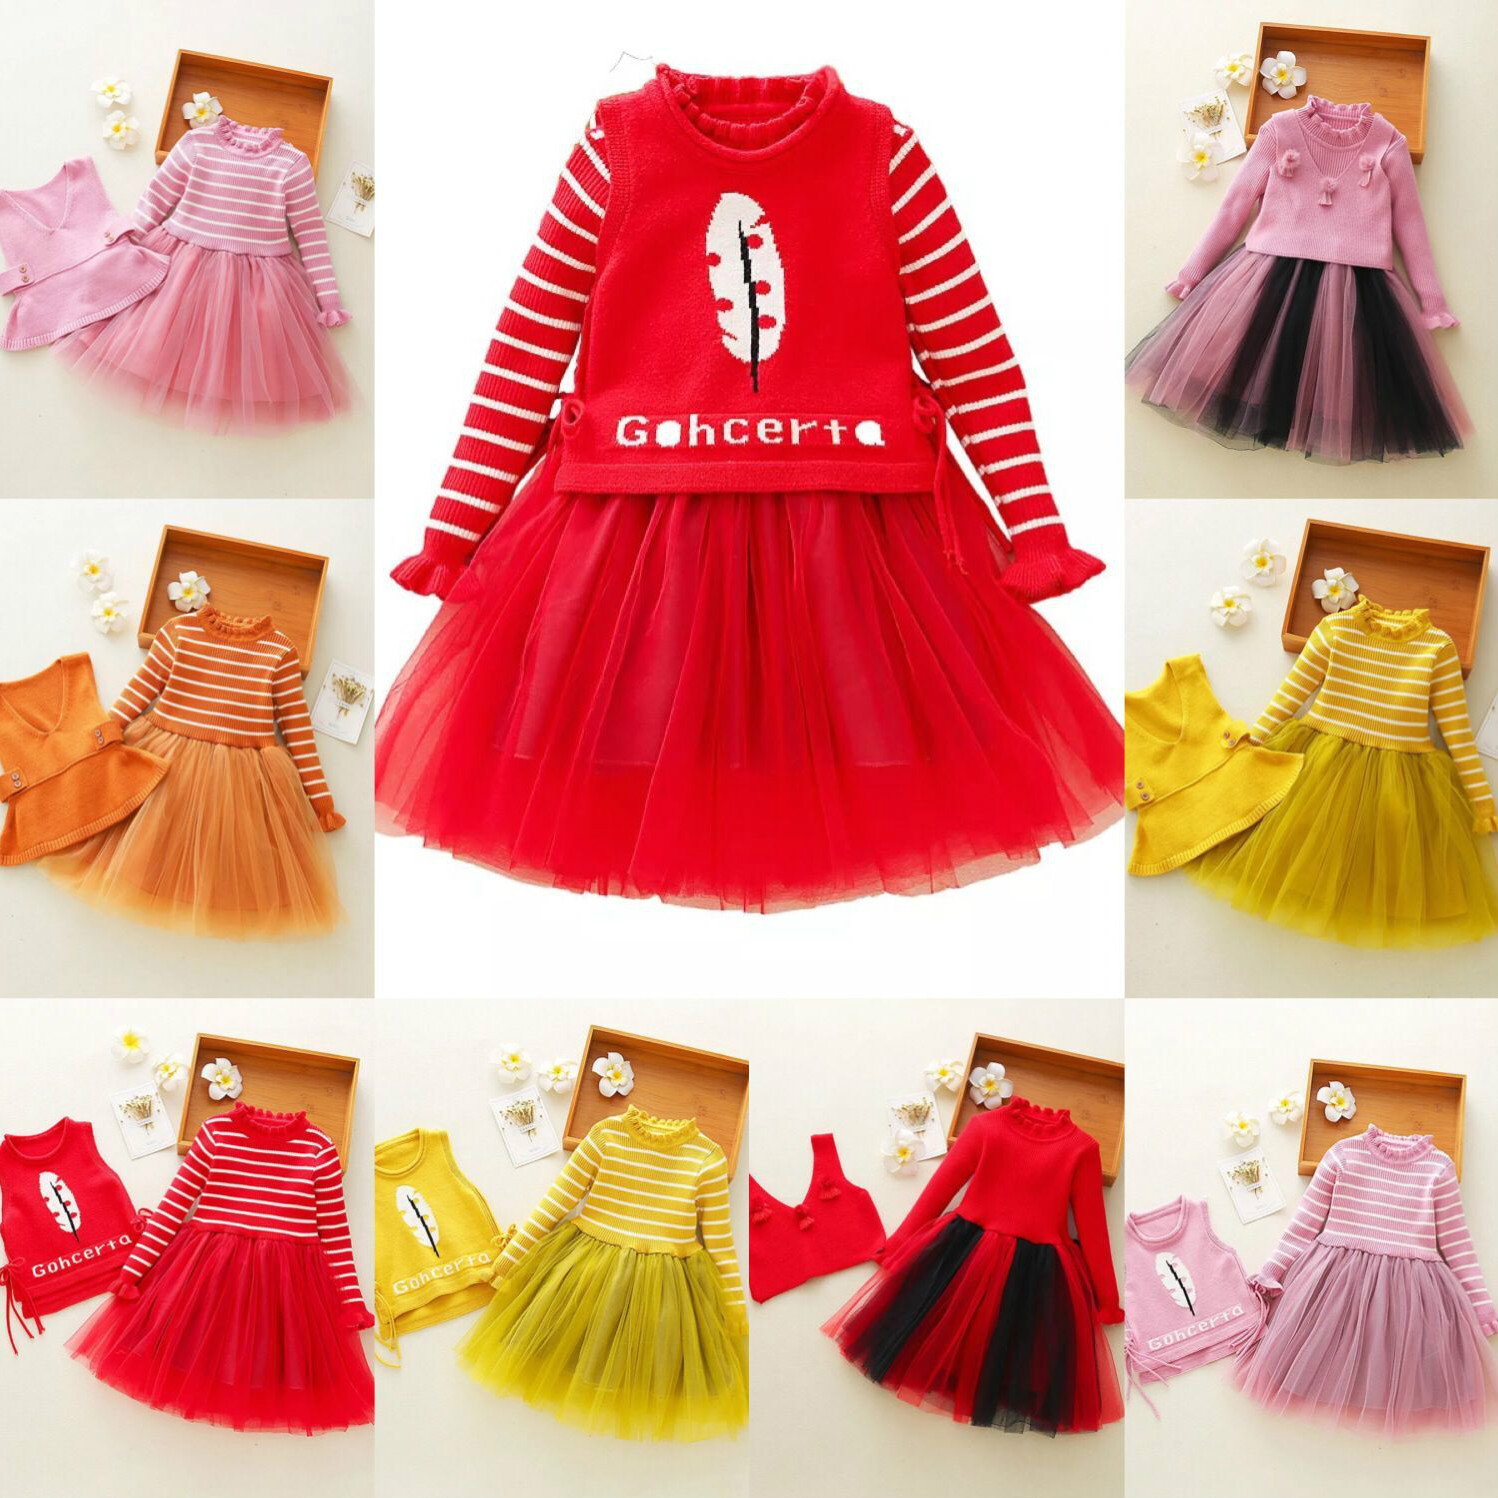 New Children Autumn Winter Dress Baby Girls Striped Long Sleeve Dresses Knitted Vest+tutu Dress 2pcs Clothes for 3-11Yrs CA3771 readit knitted dress 2017 autumn winter side split with faux pearl beading long sleeve elegant slim dress vestidos d2745 page 3